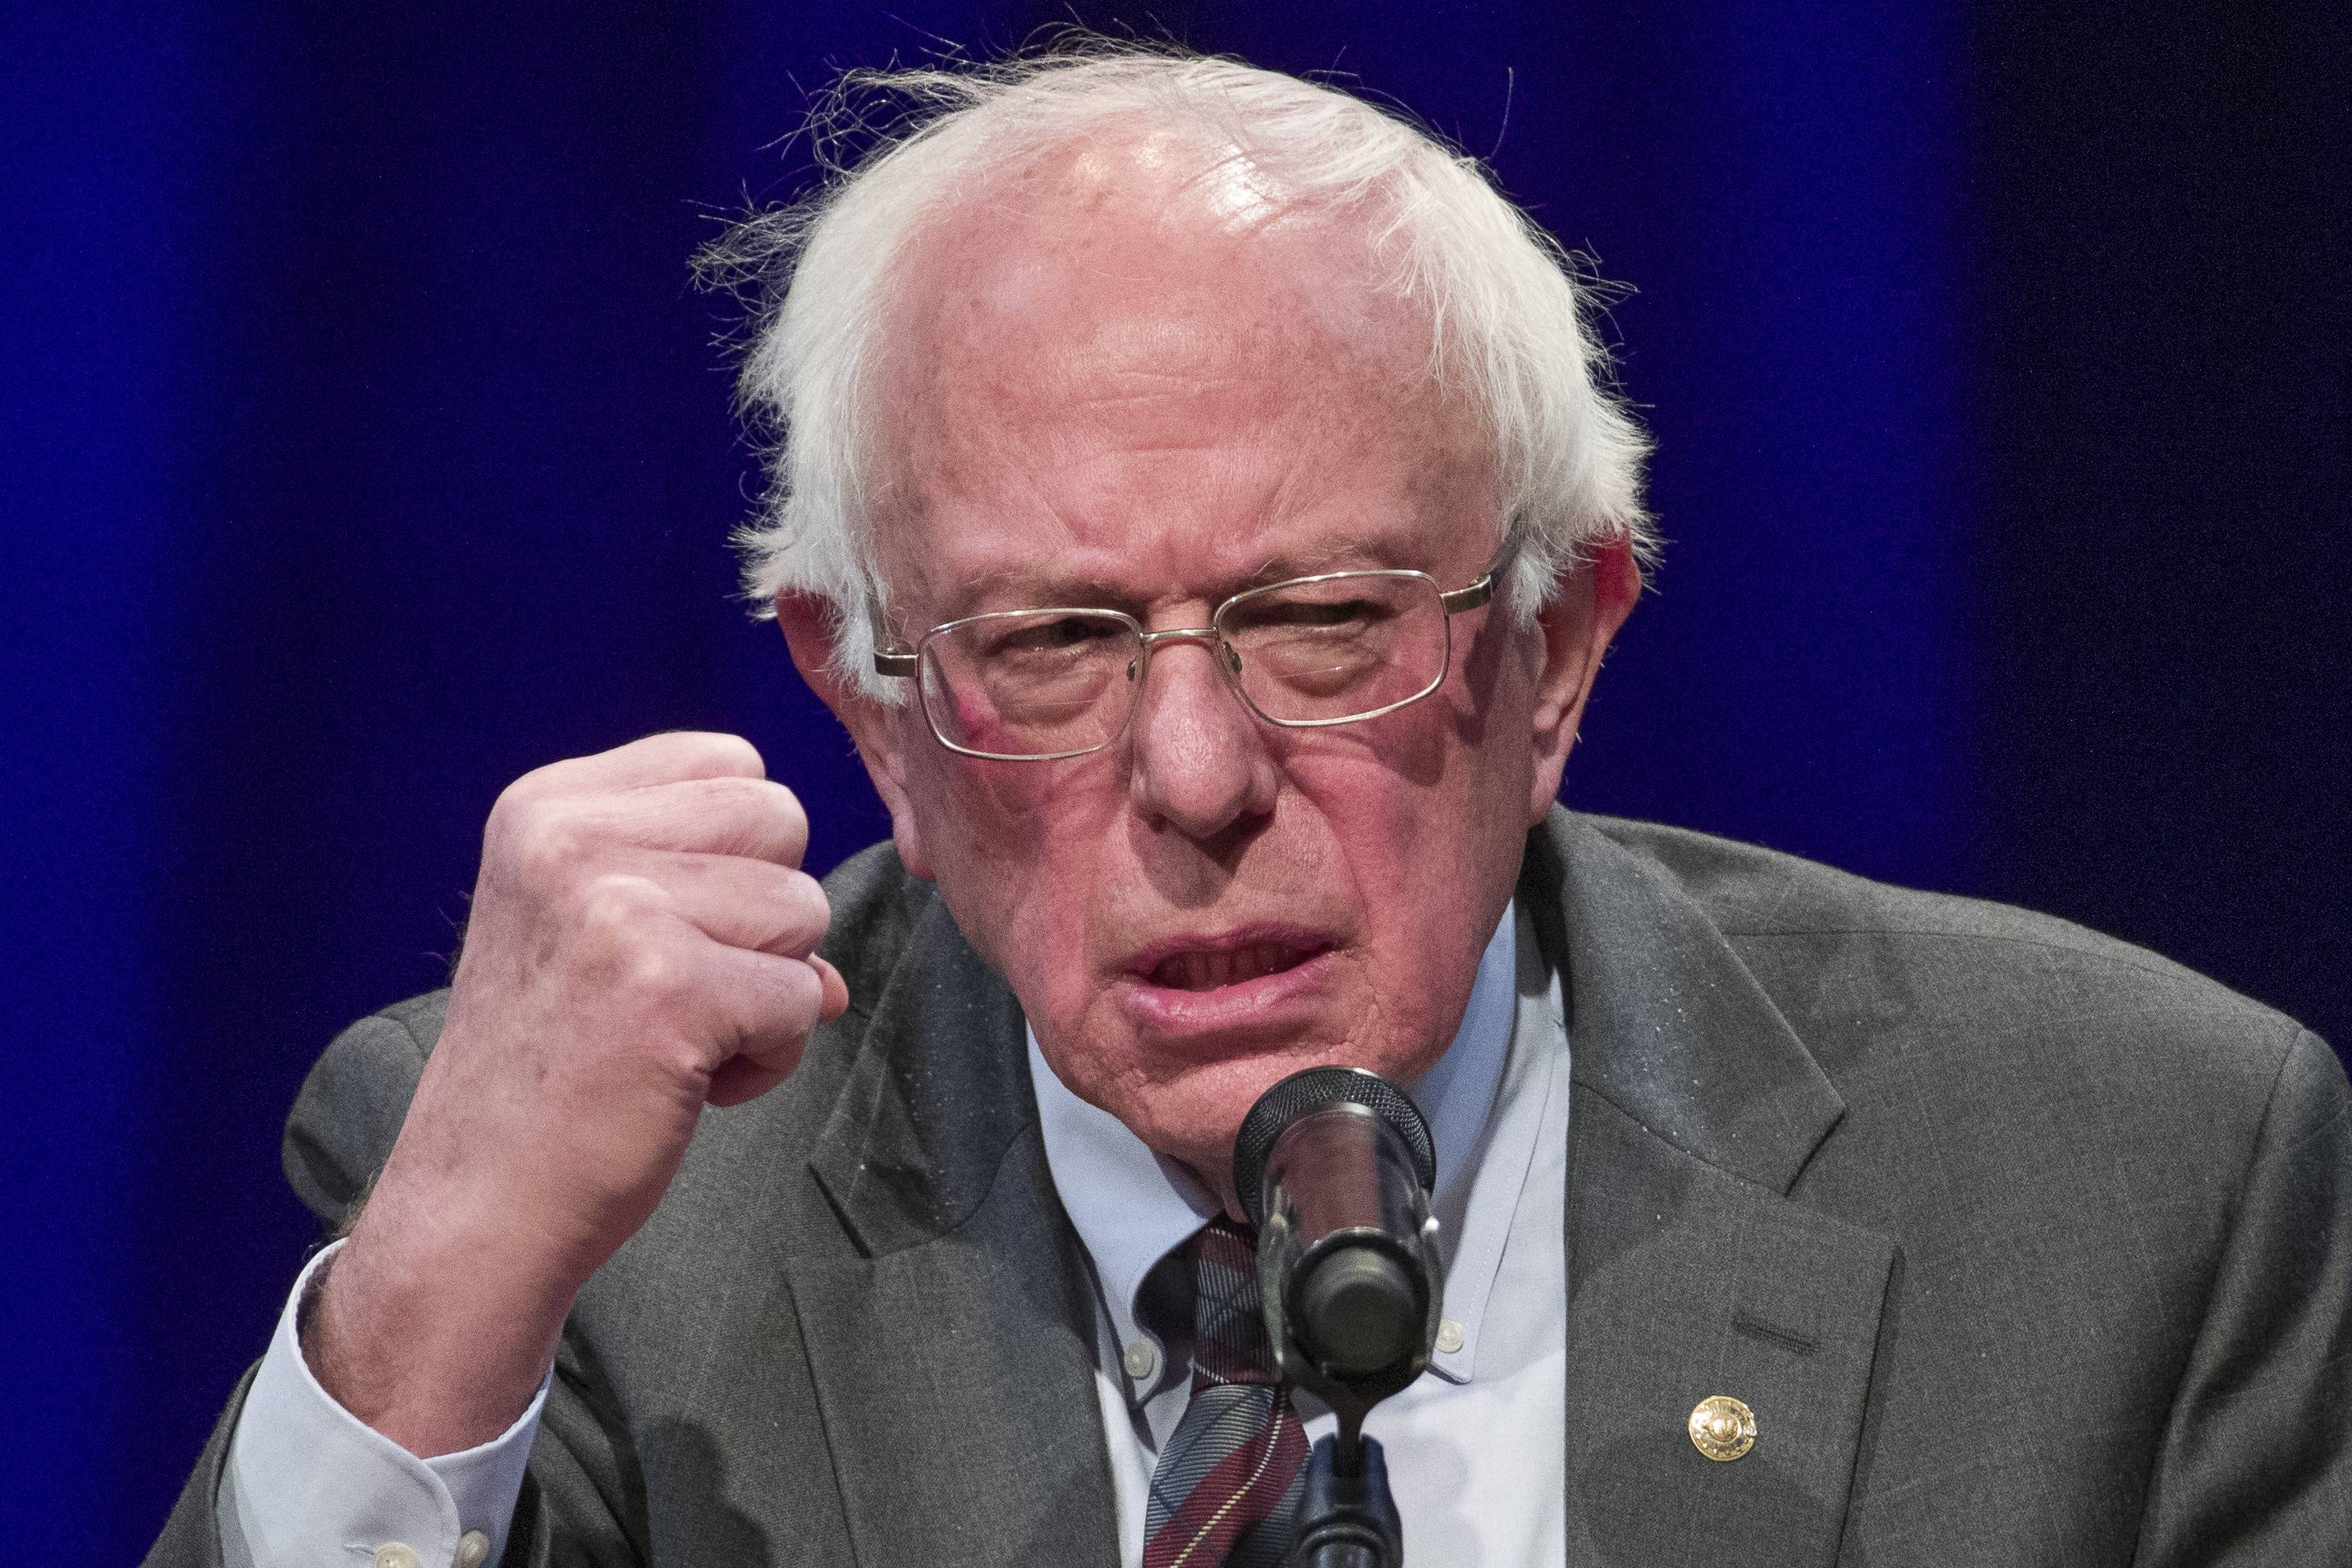 Sen. Bernie Sanders, whose insurgent 2016 presidential campaign reshaped Democratic politics, announced Tuesday that he is running for president in 2020.